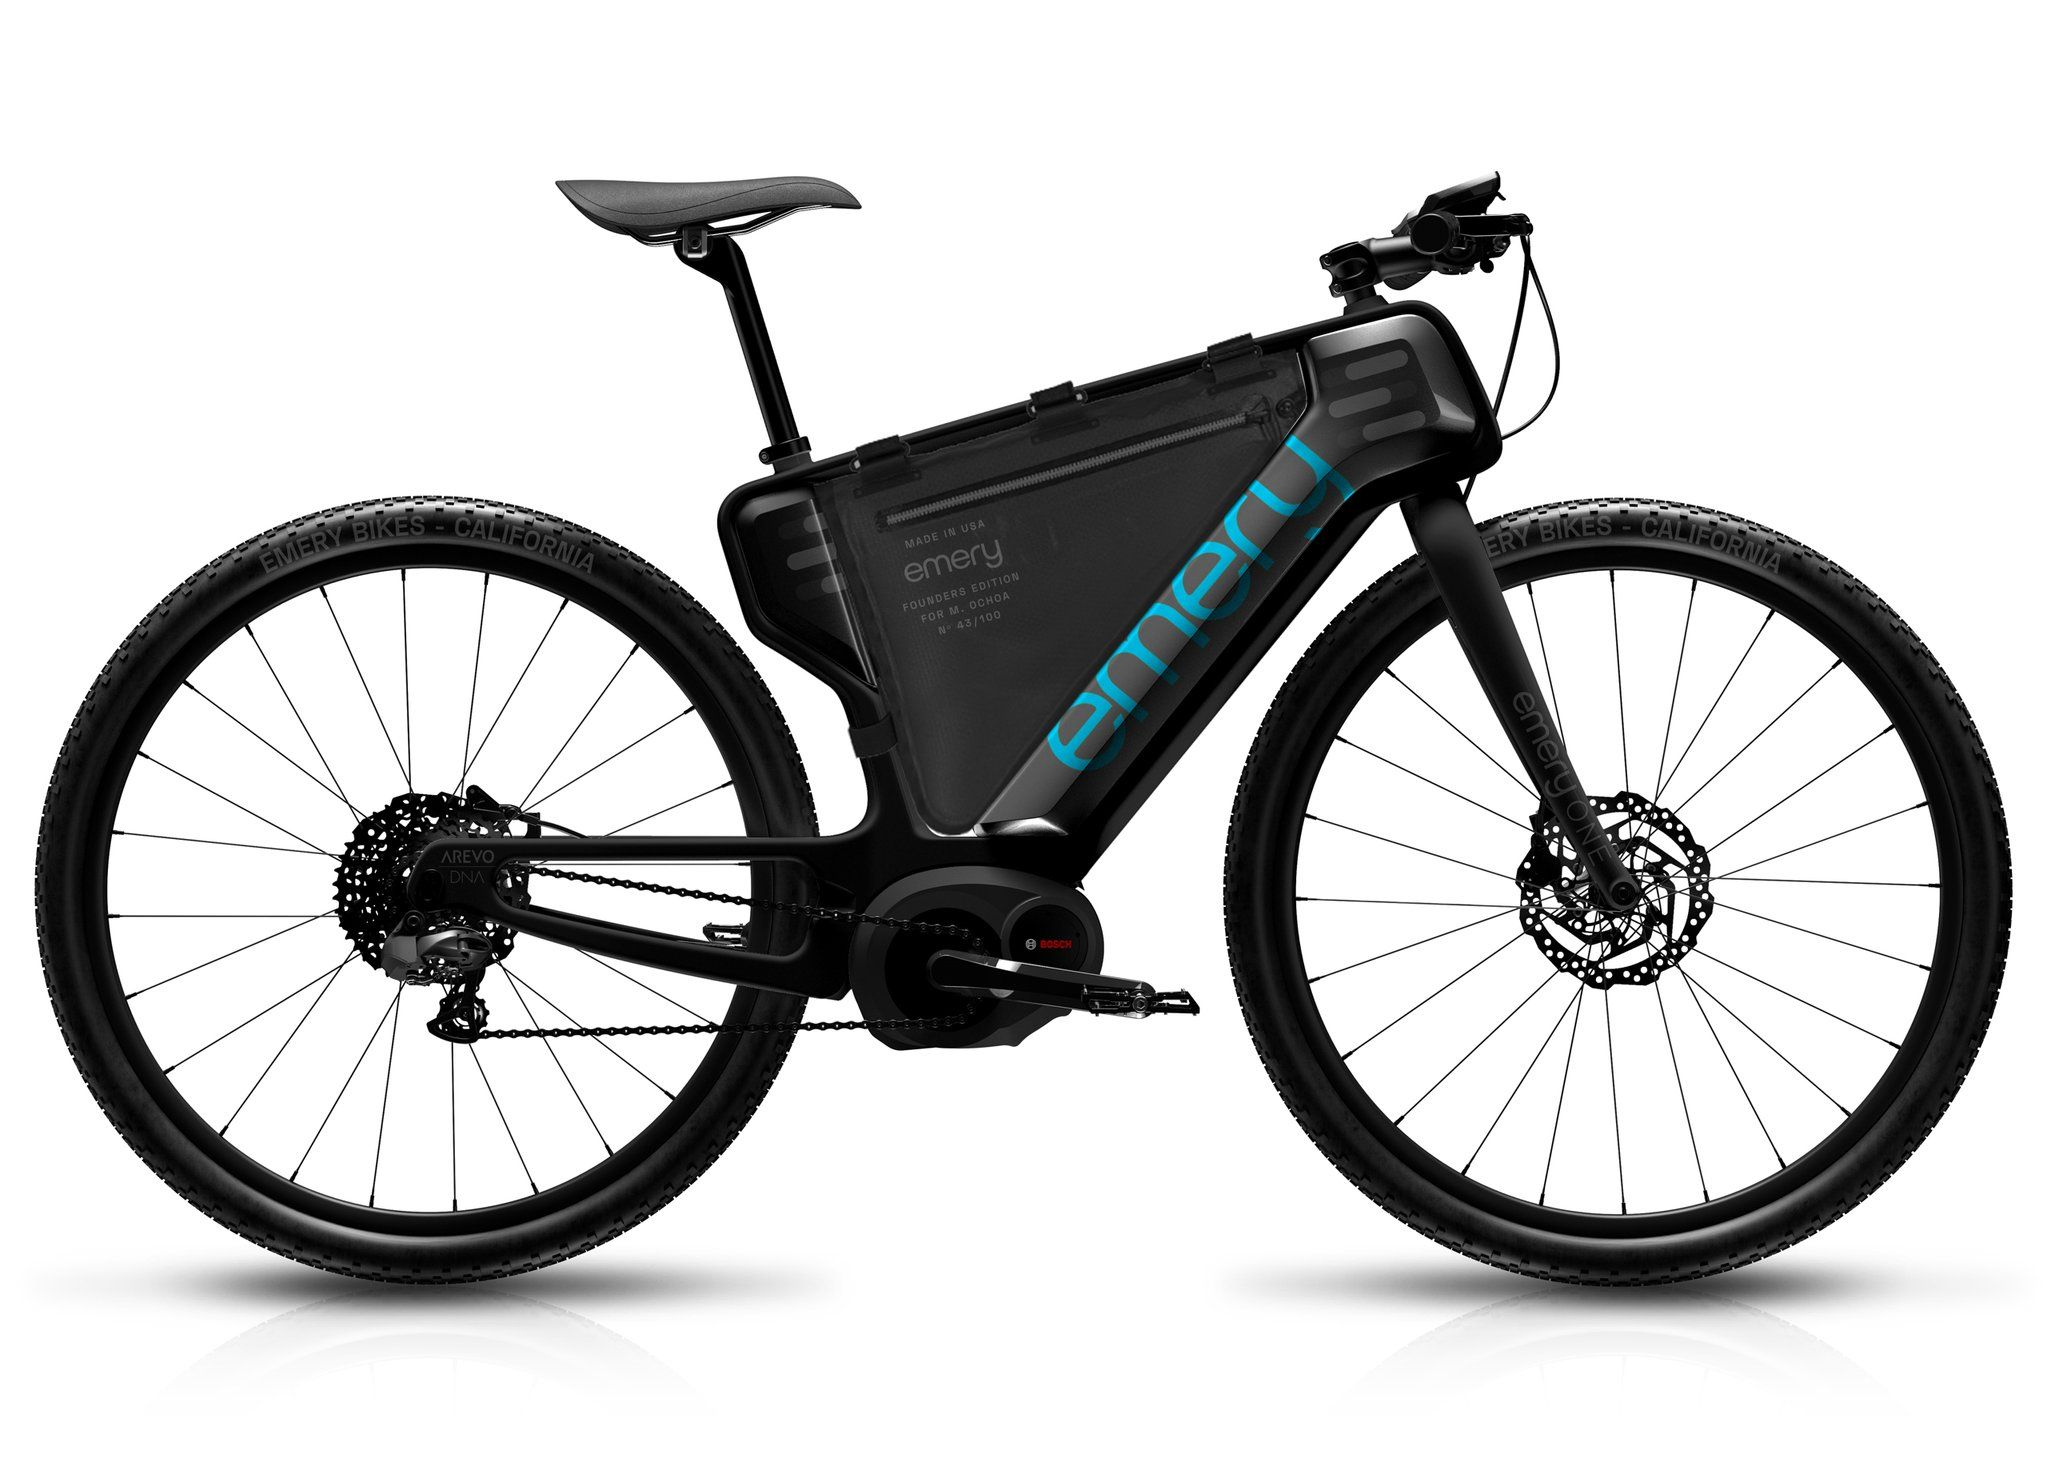 Pin by Otto Williams on EBike Carbon fiber, 3d printing